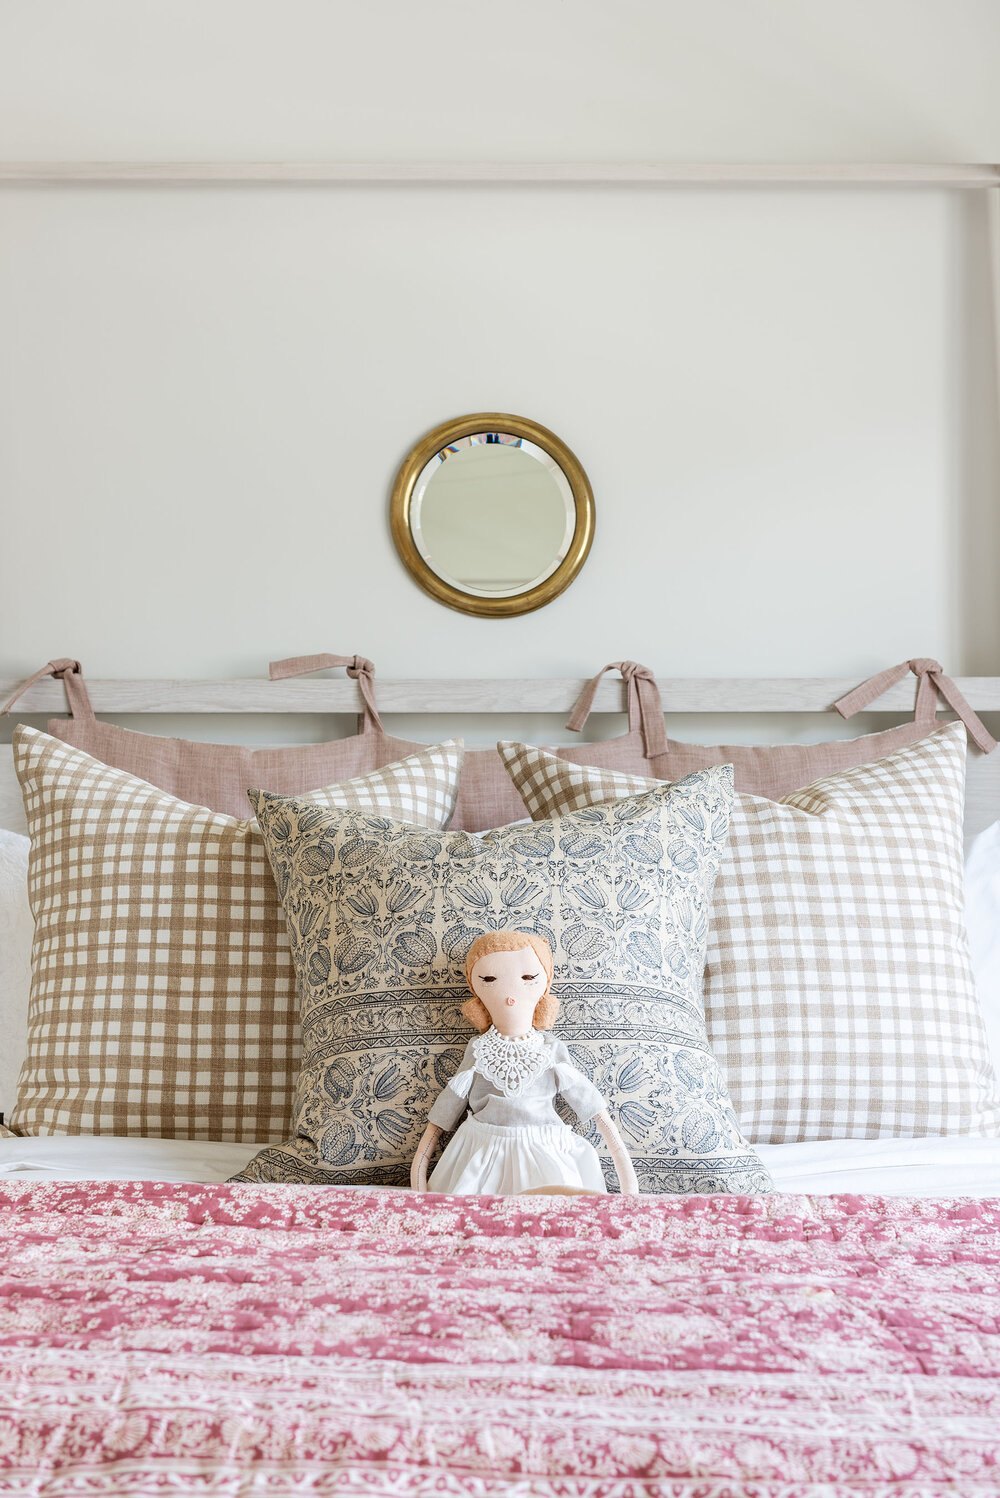 The McGee Home: Ivy's Room Photo Tour